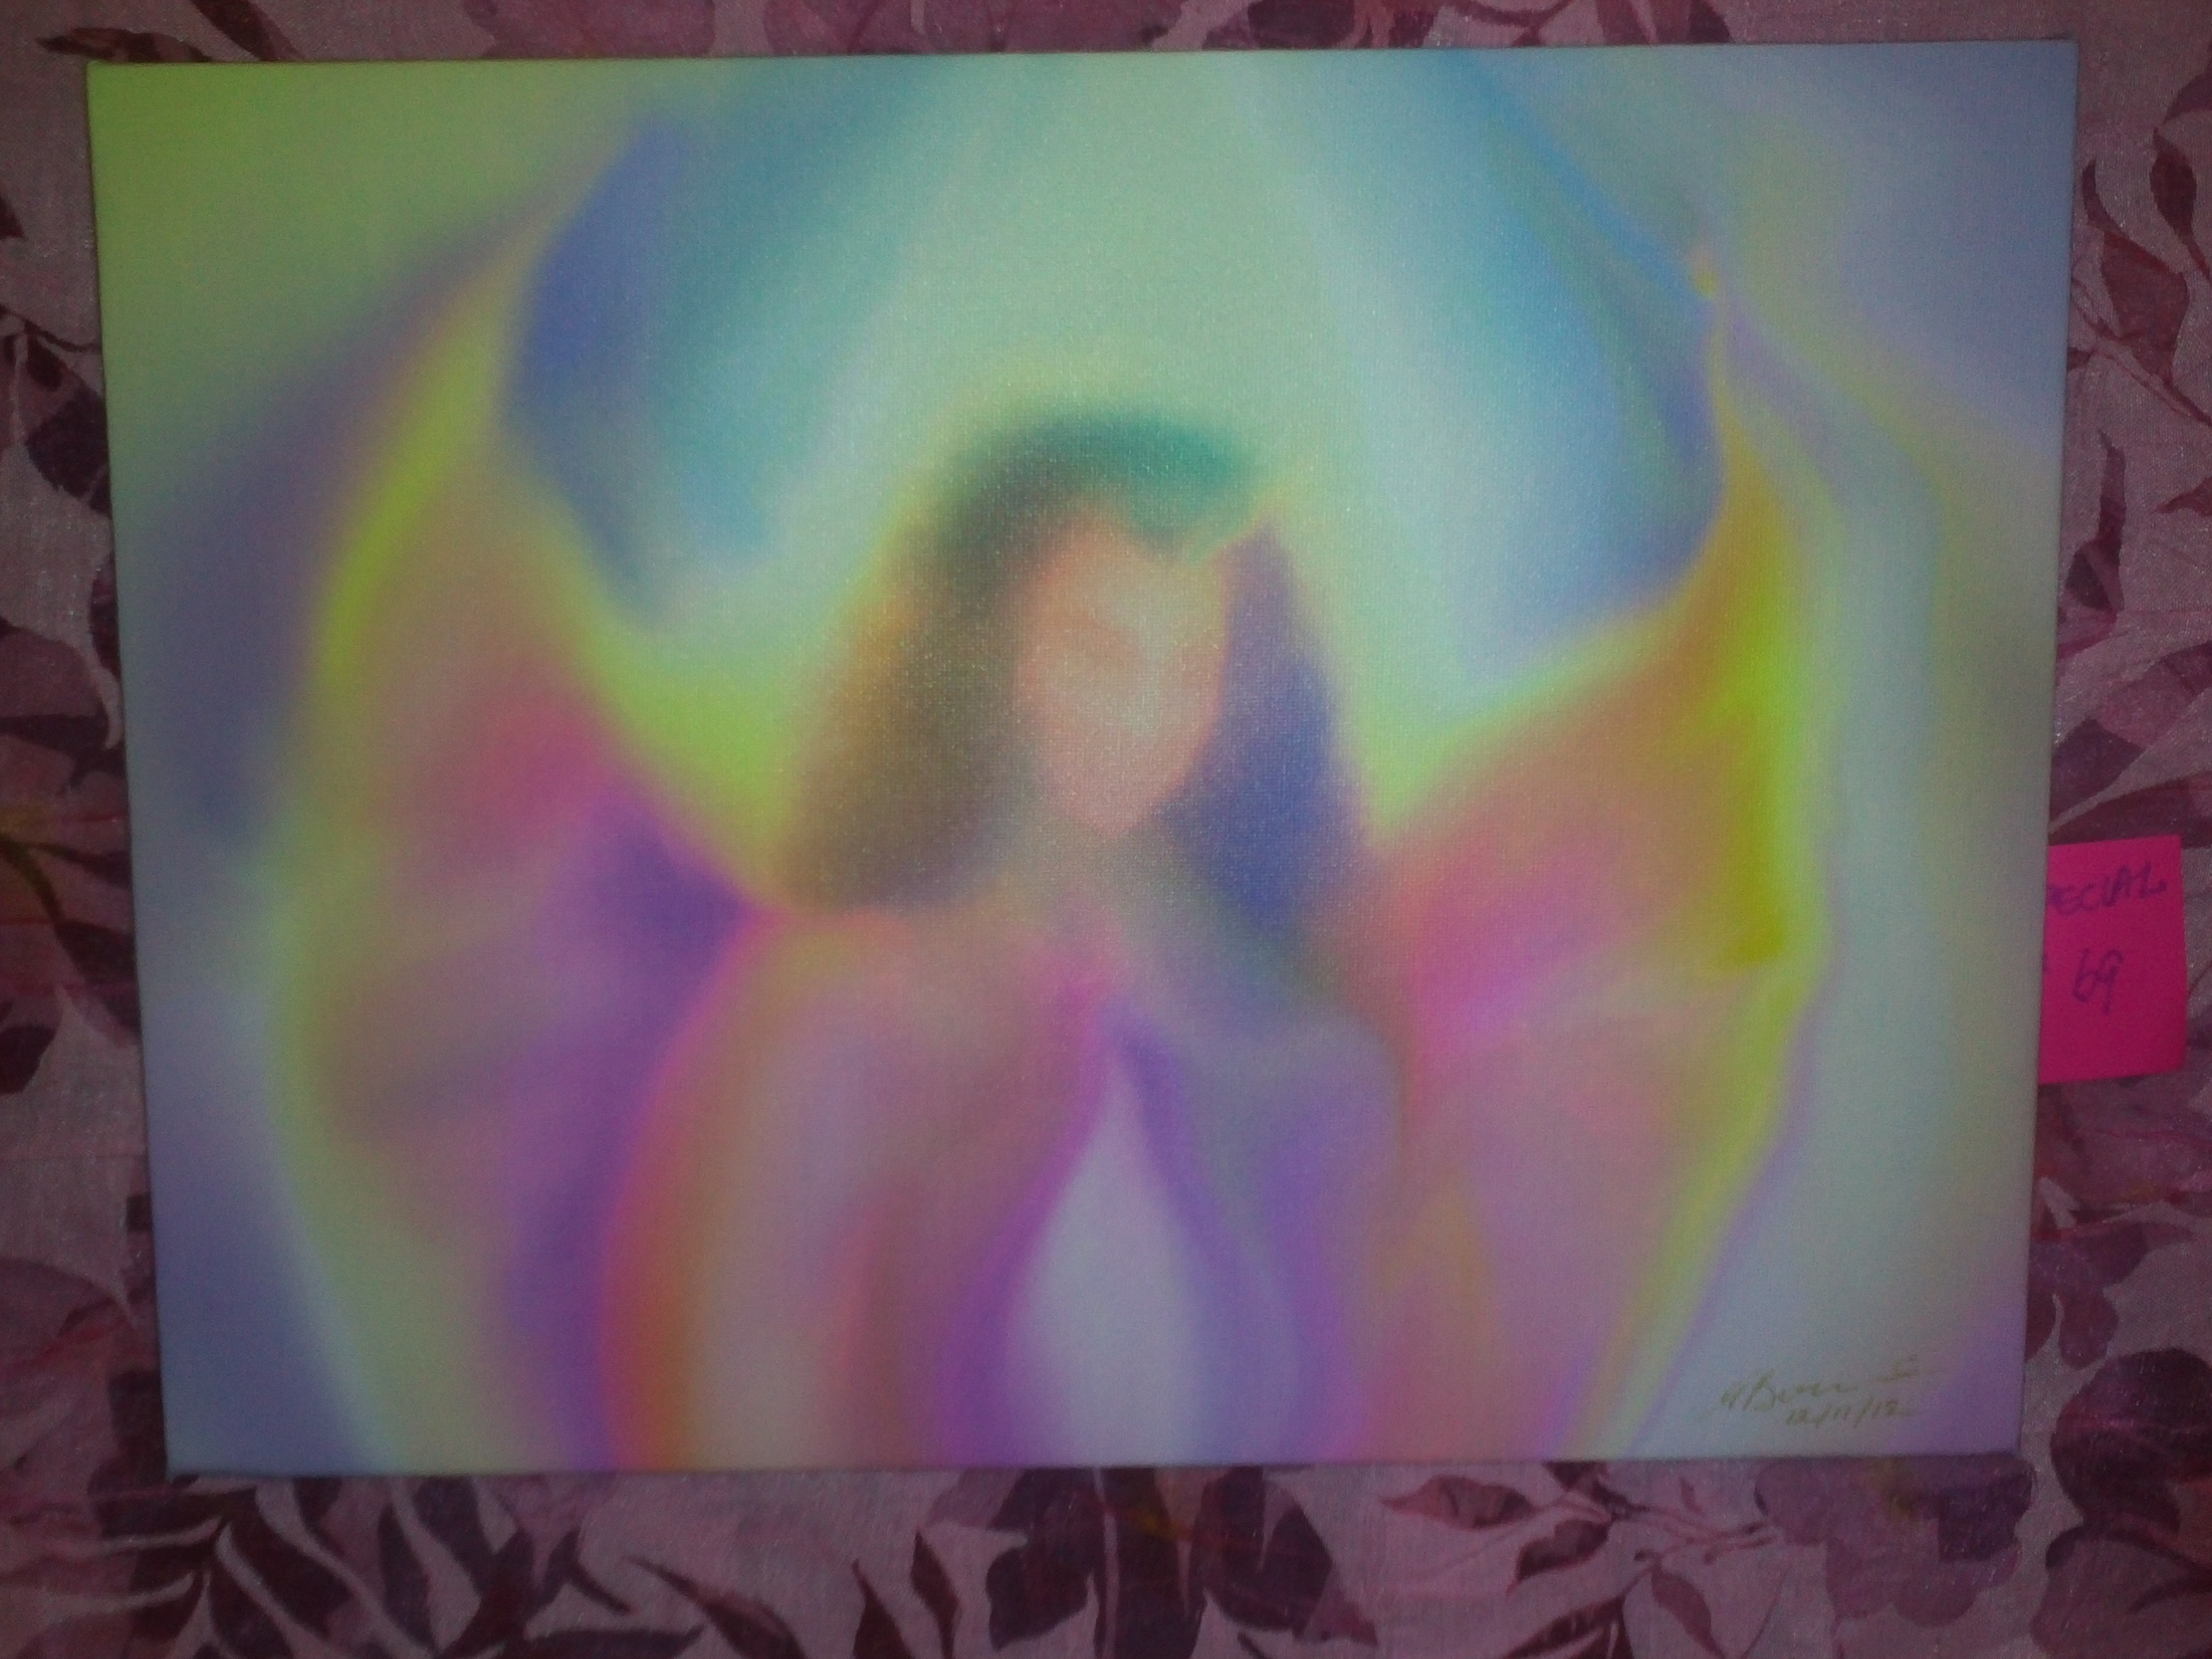 Angel of Light Lei Astra by Glenyss Bourne